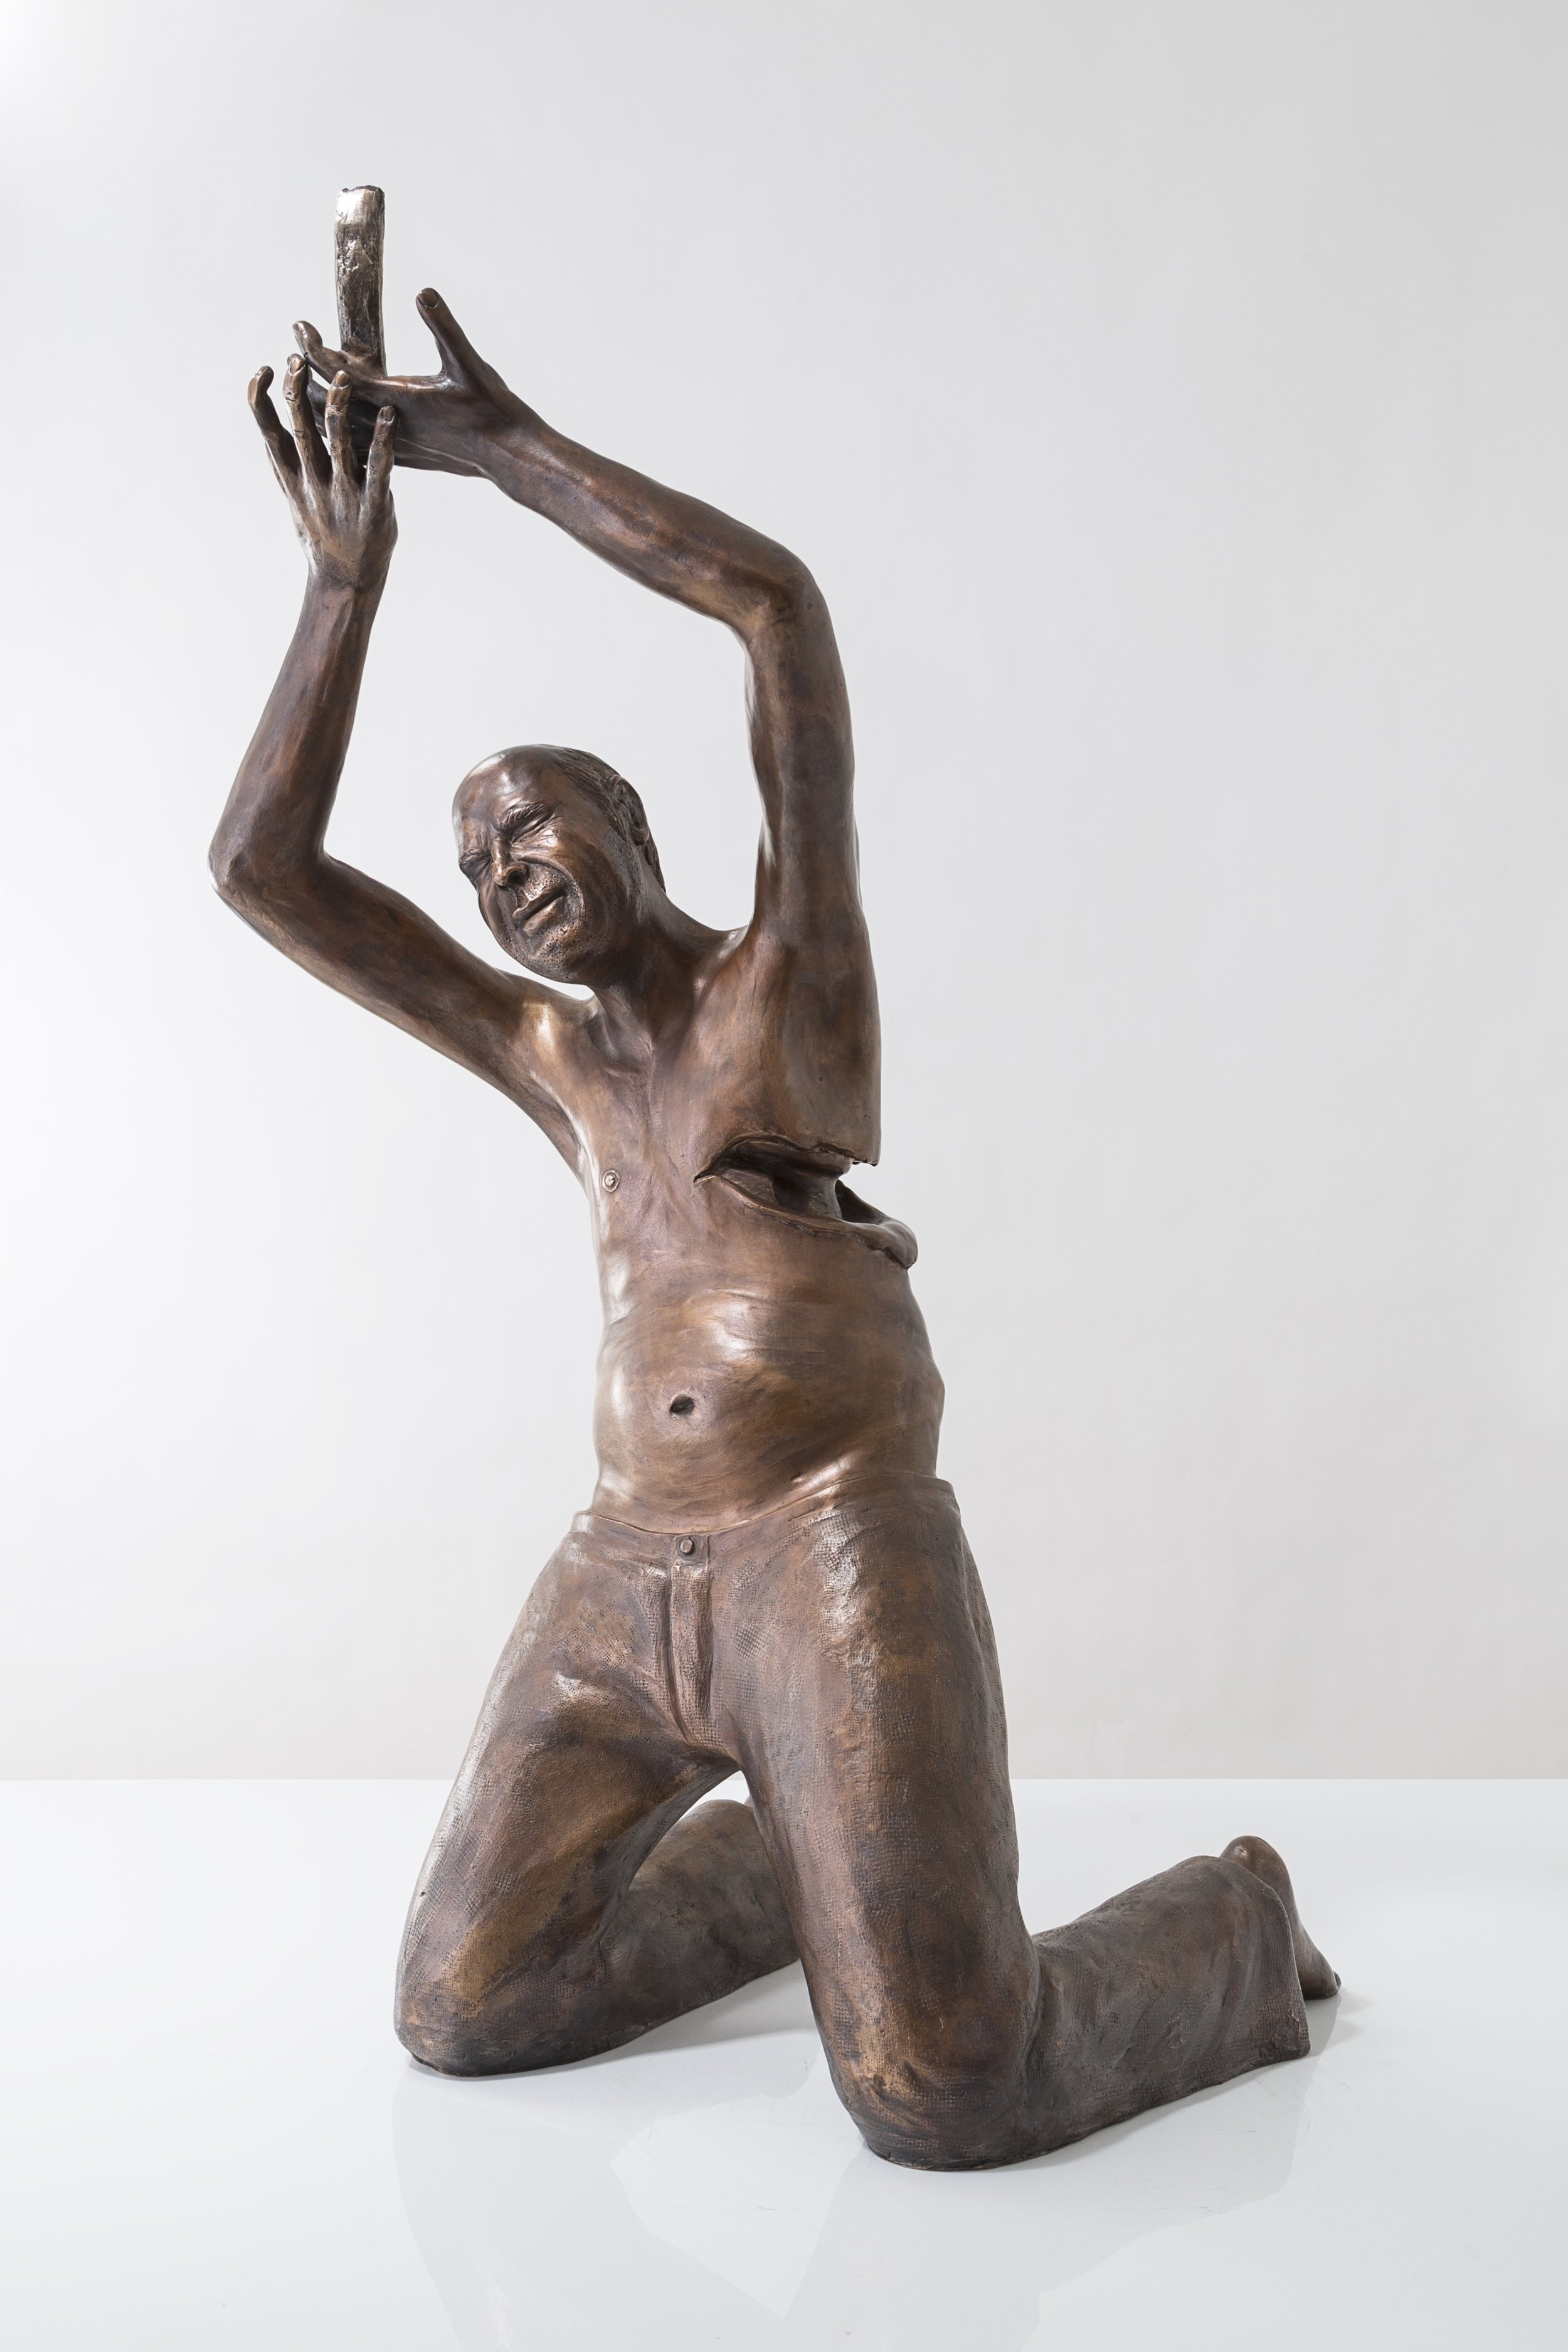 God I Need a Girlfriend  Bronze  Brooklyn, 2014  84cm x 38cm x 31cm